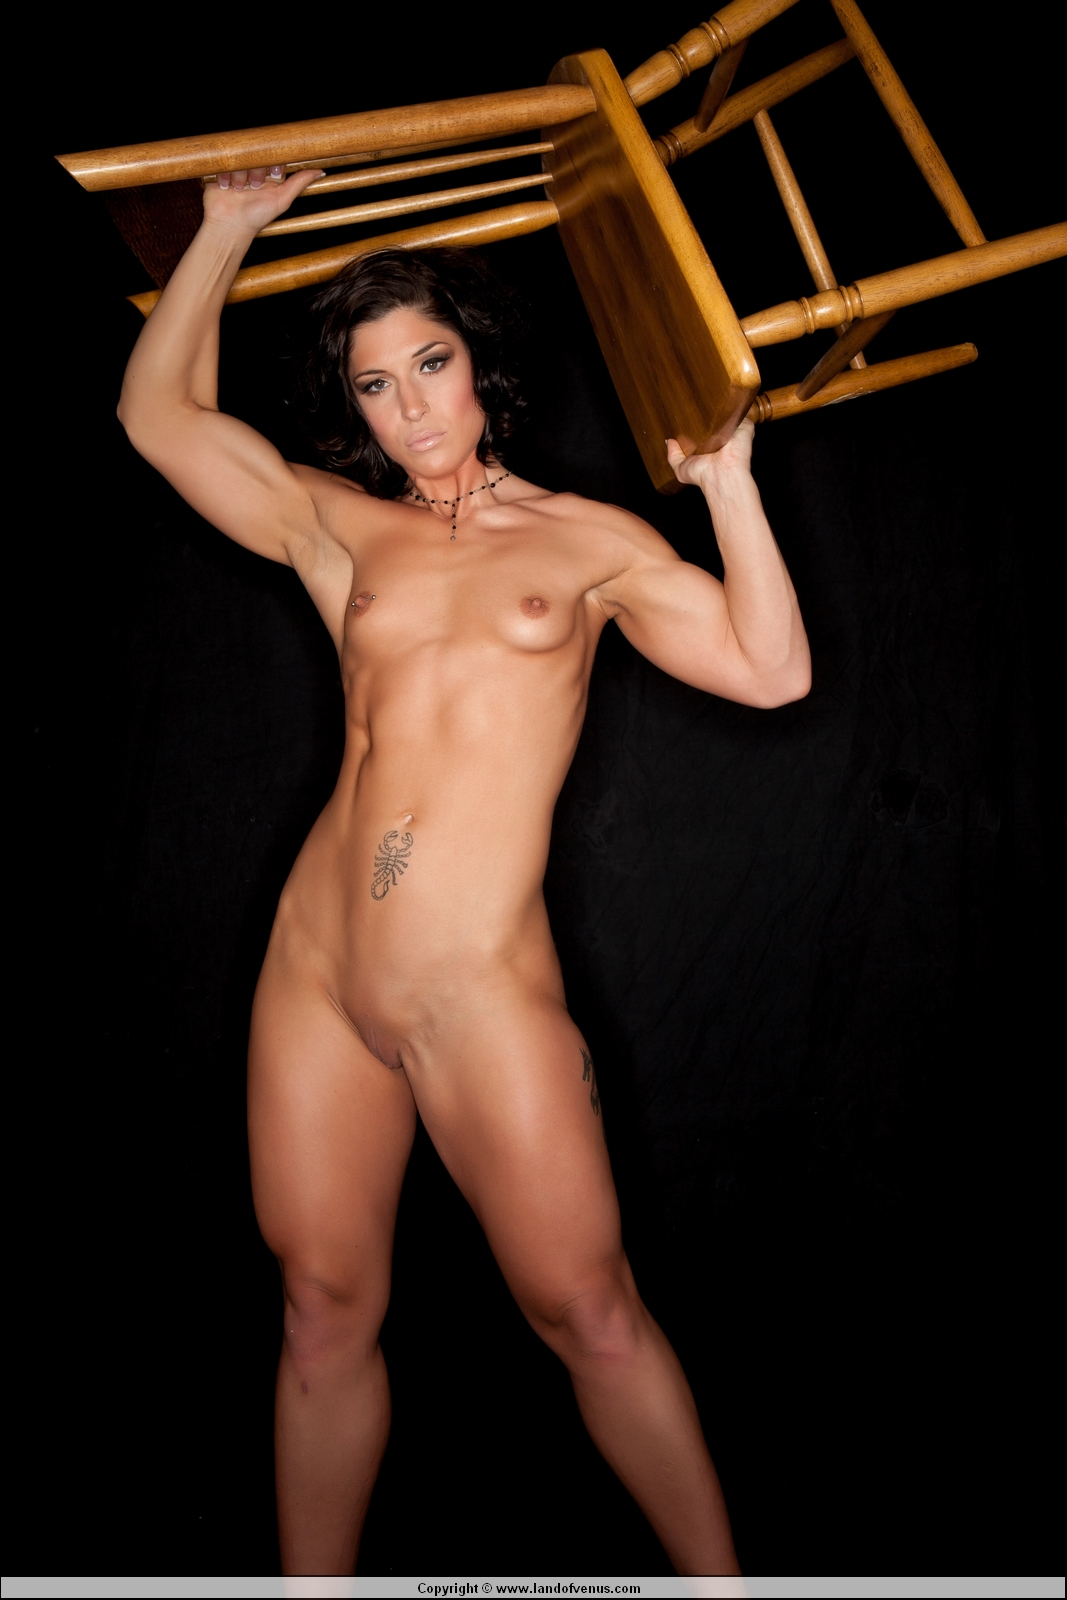 female-woman-athlete-naked